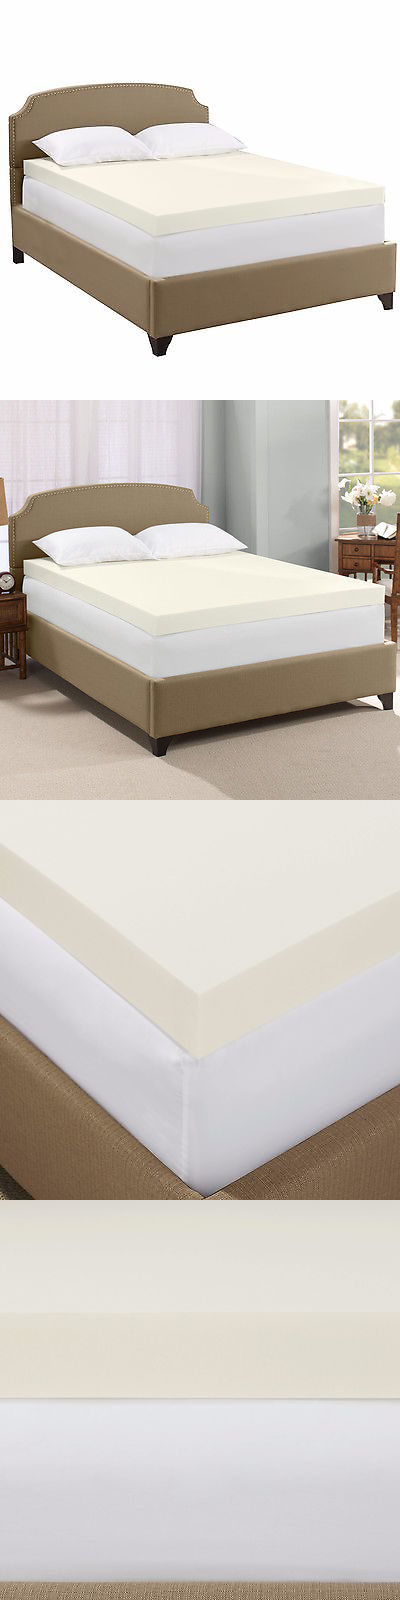 Mattress Pads And Feather Beds 175751 Serta Ultimate 4 Inch Visco